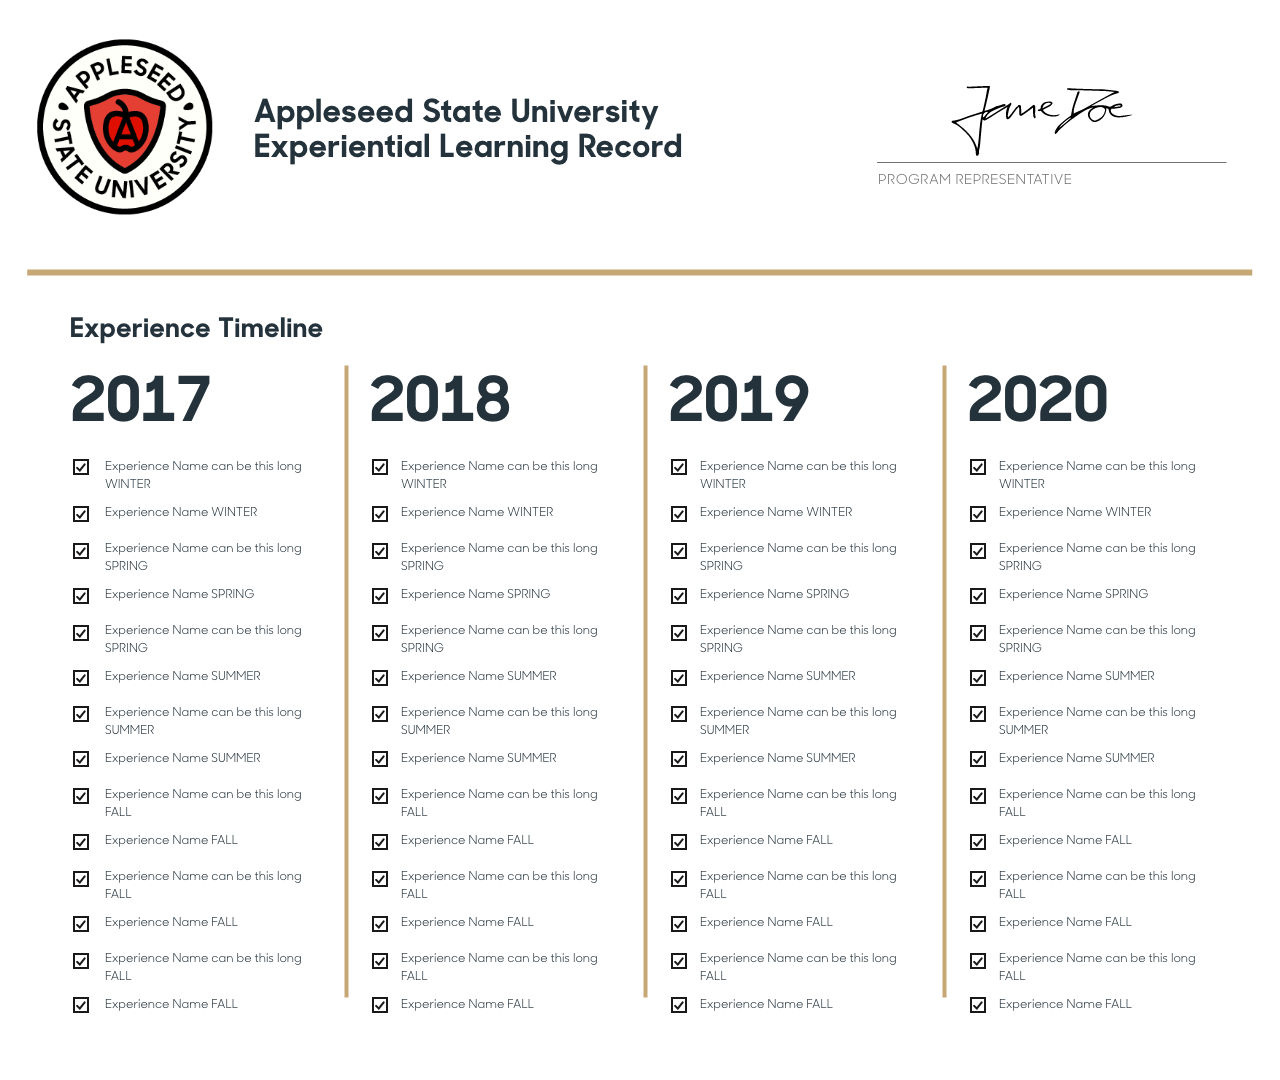 02_Suitable_ Experiential Learning Record_Timeline